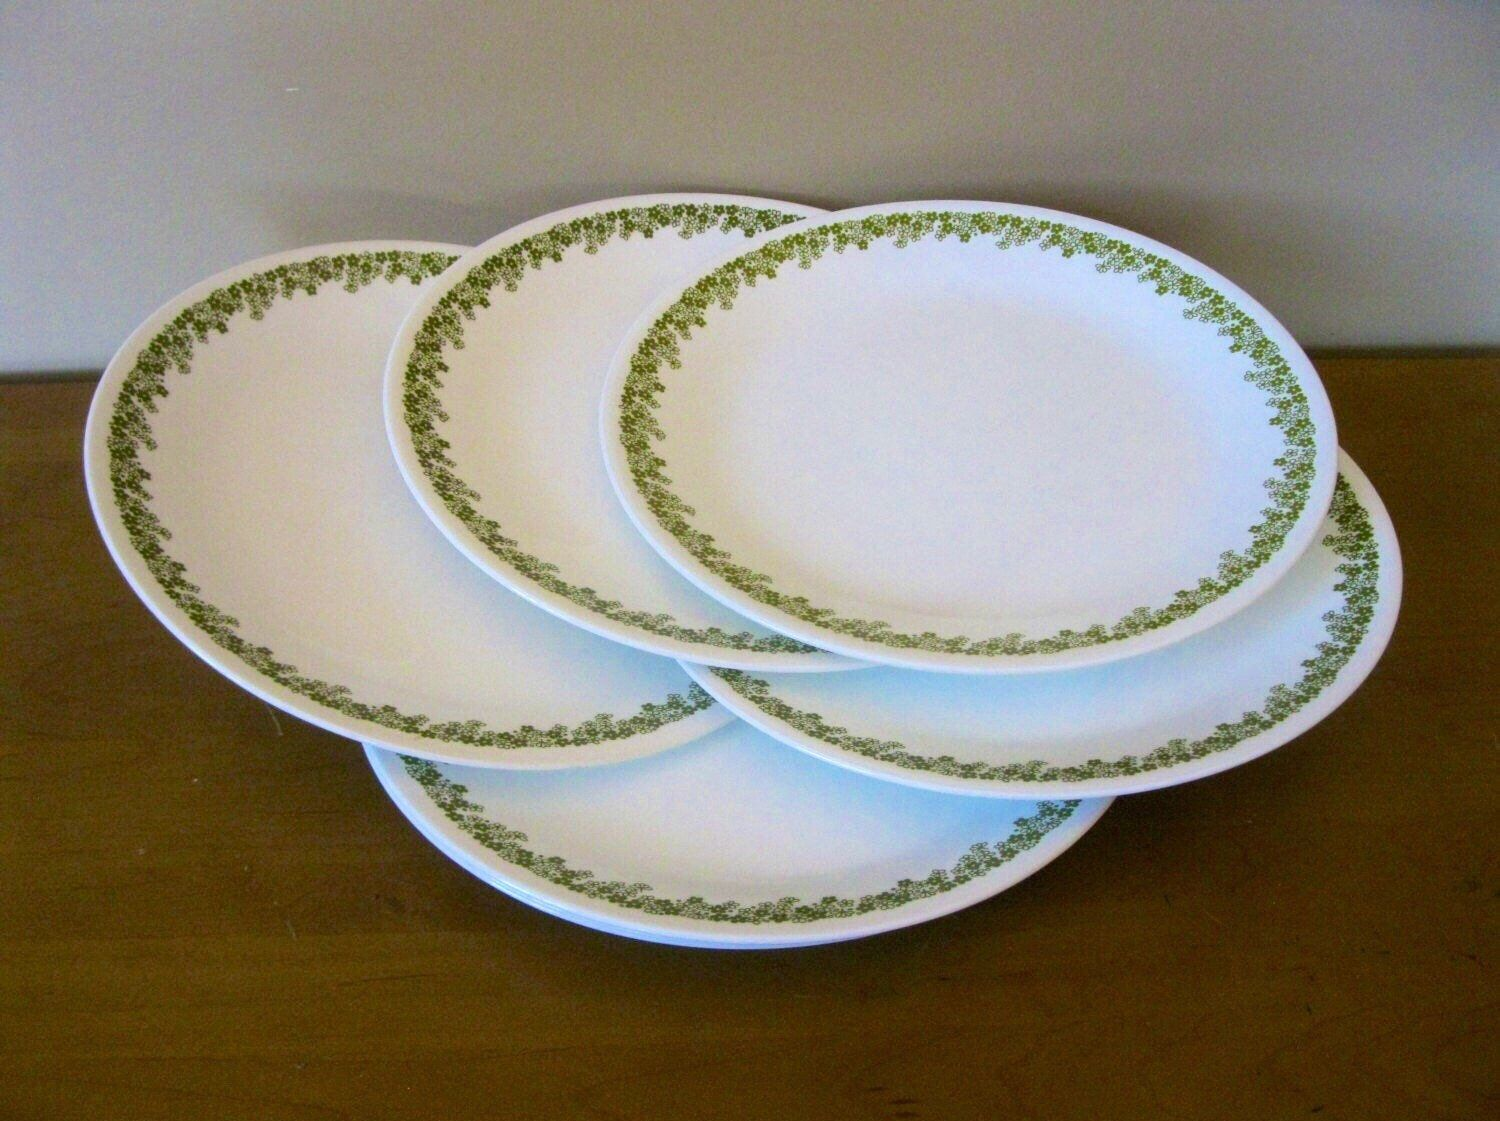 green and black daisy plates small square plates with flowers in yellow